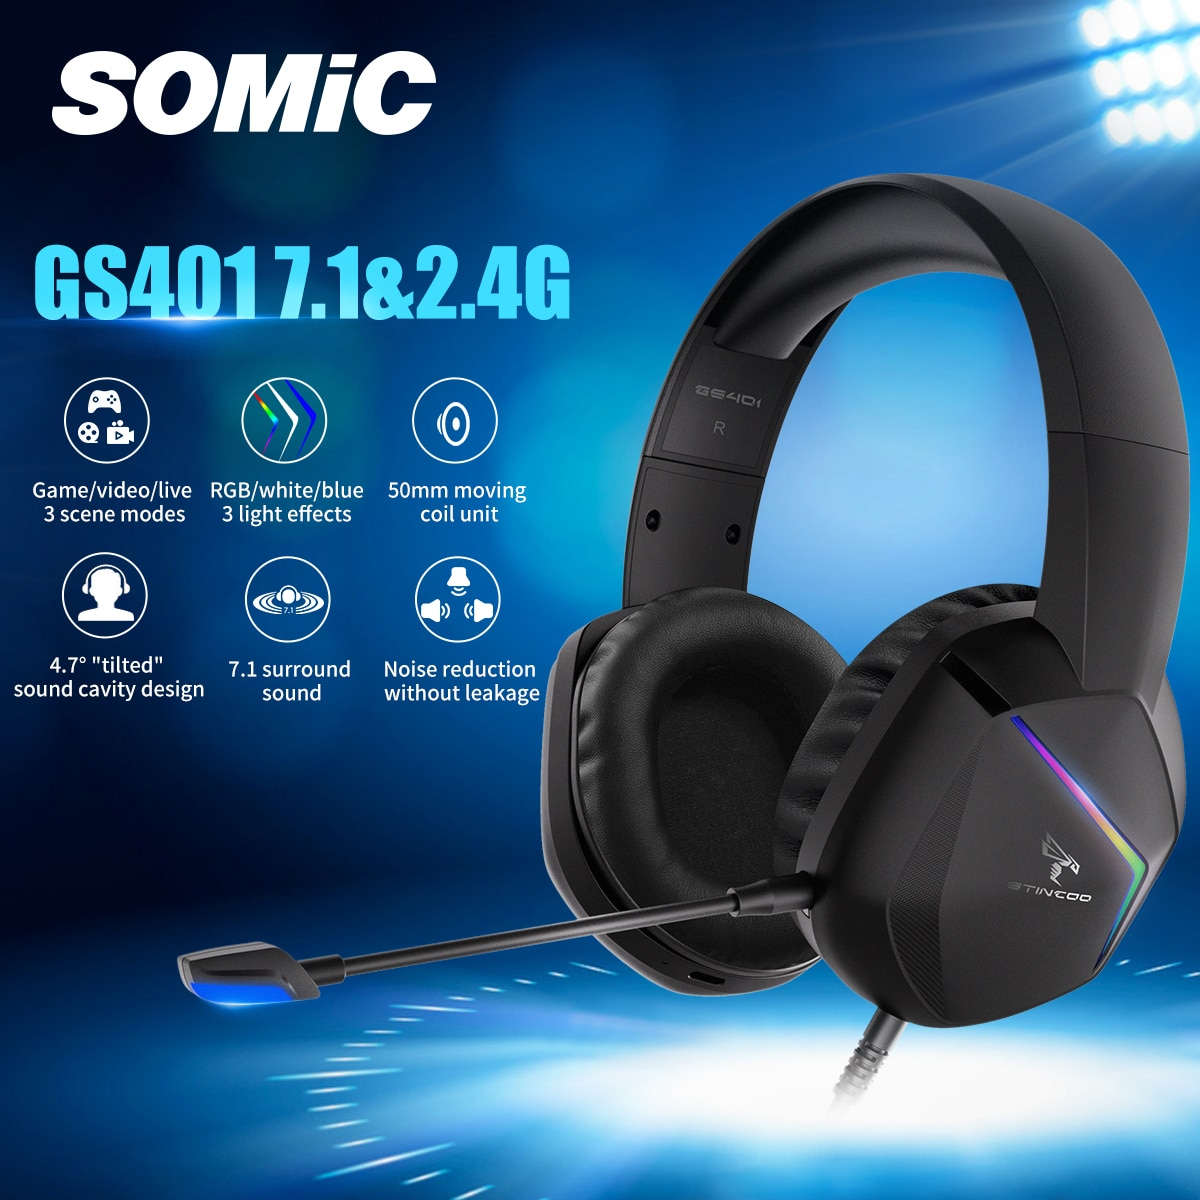 SOMIC Gaming Headset Game/Video/Live 3 Modes LED Headphones 7.1 Surround Sound Wireless/Wired for PC